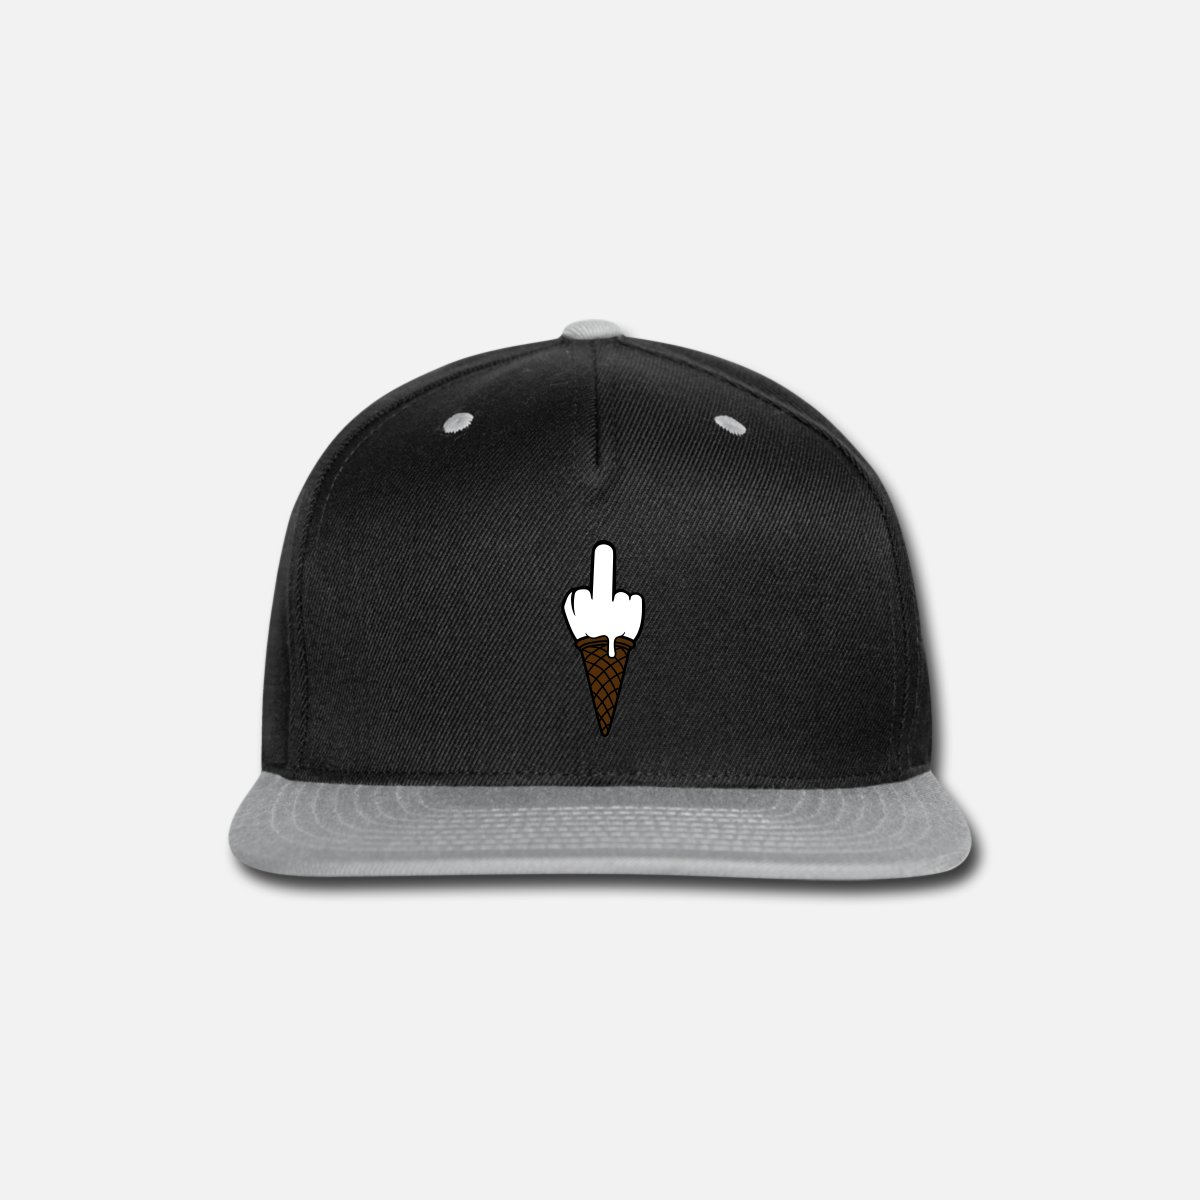 a4d76dfc0 ice ball fuck you wanker insult middle finger ice Snap-back Baseball Cap -  black/gray